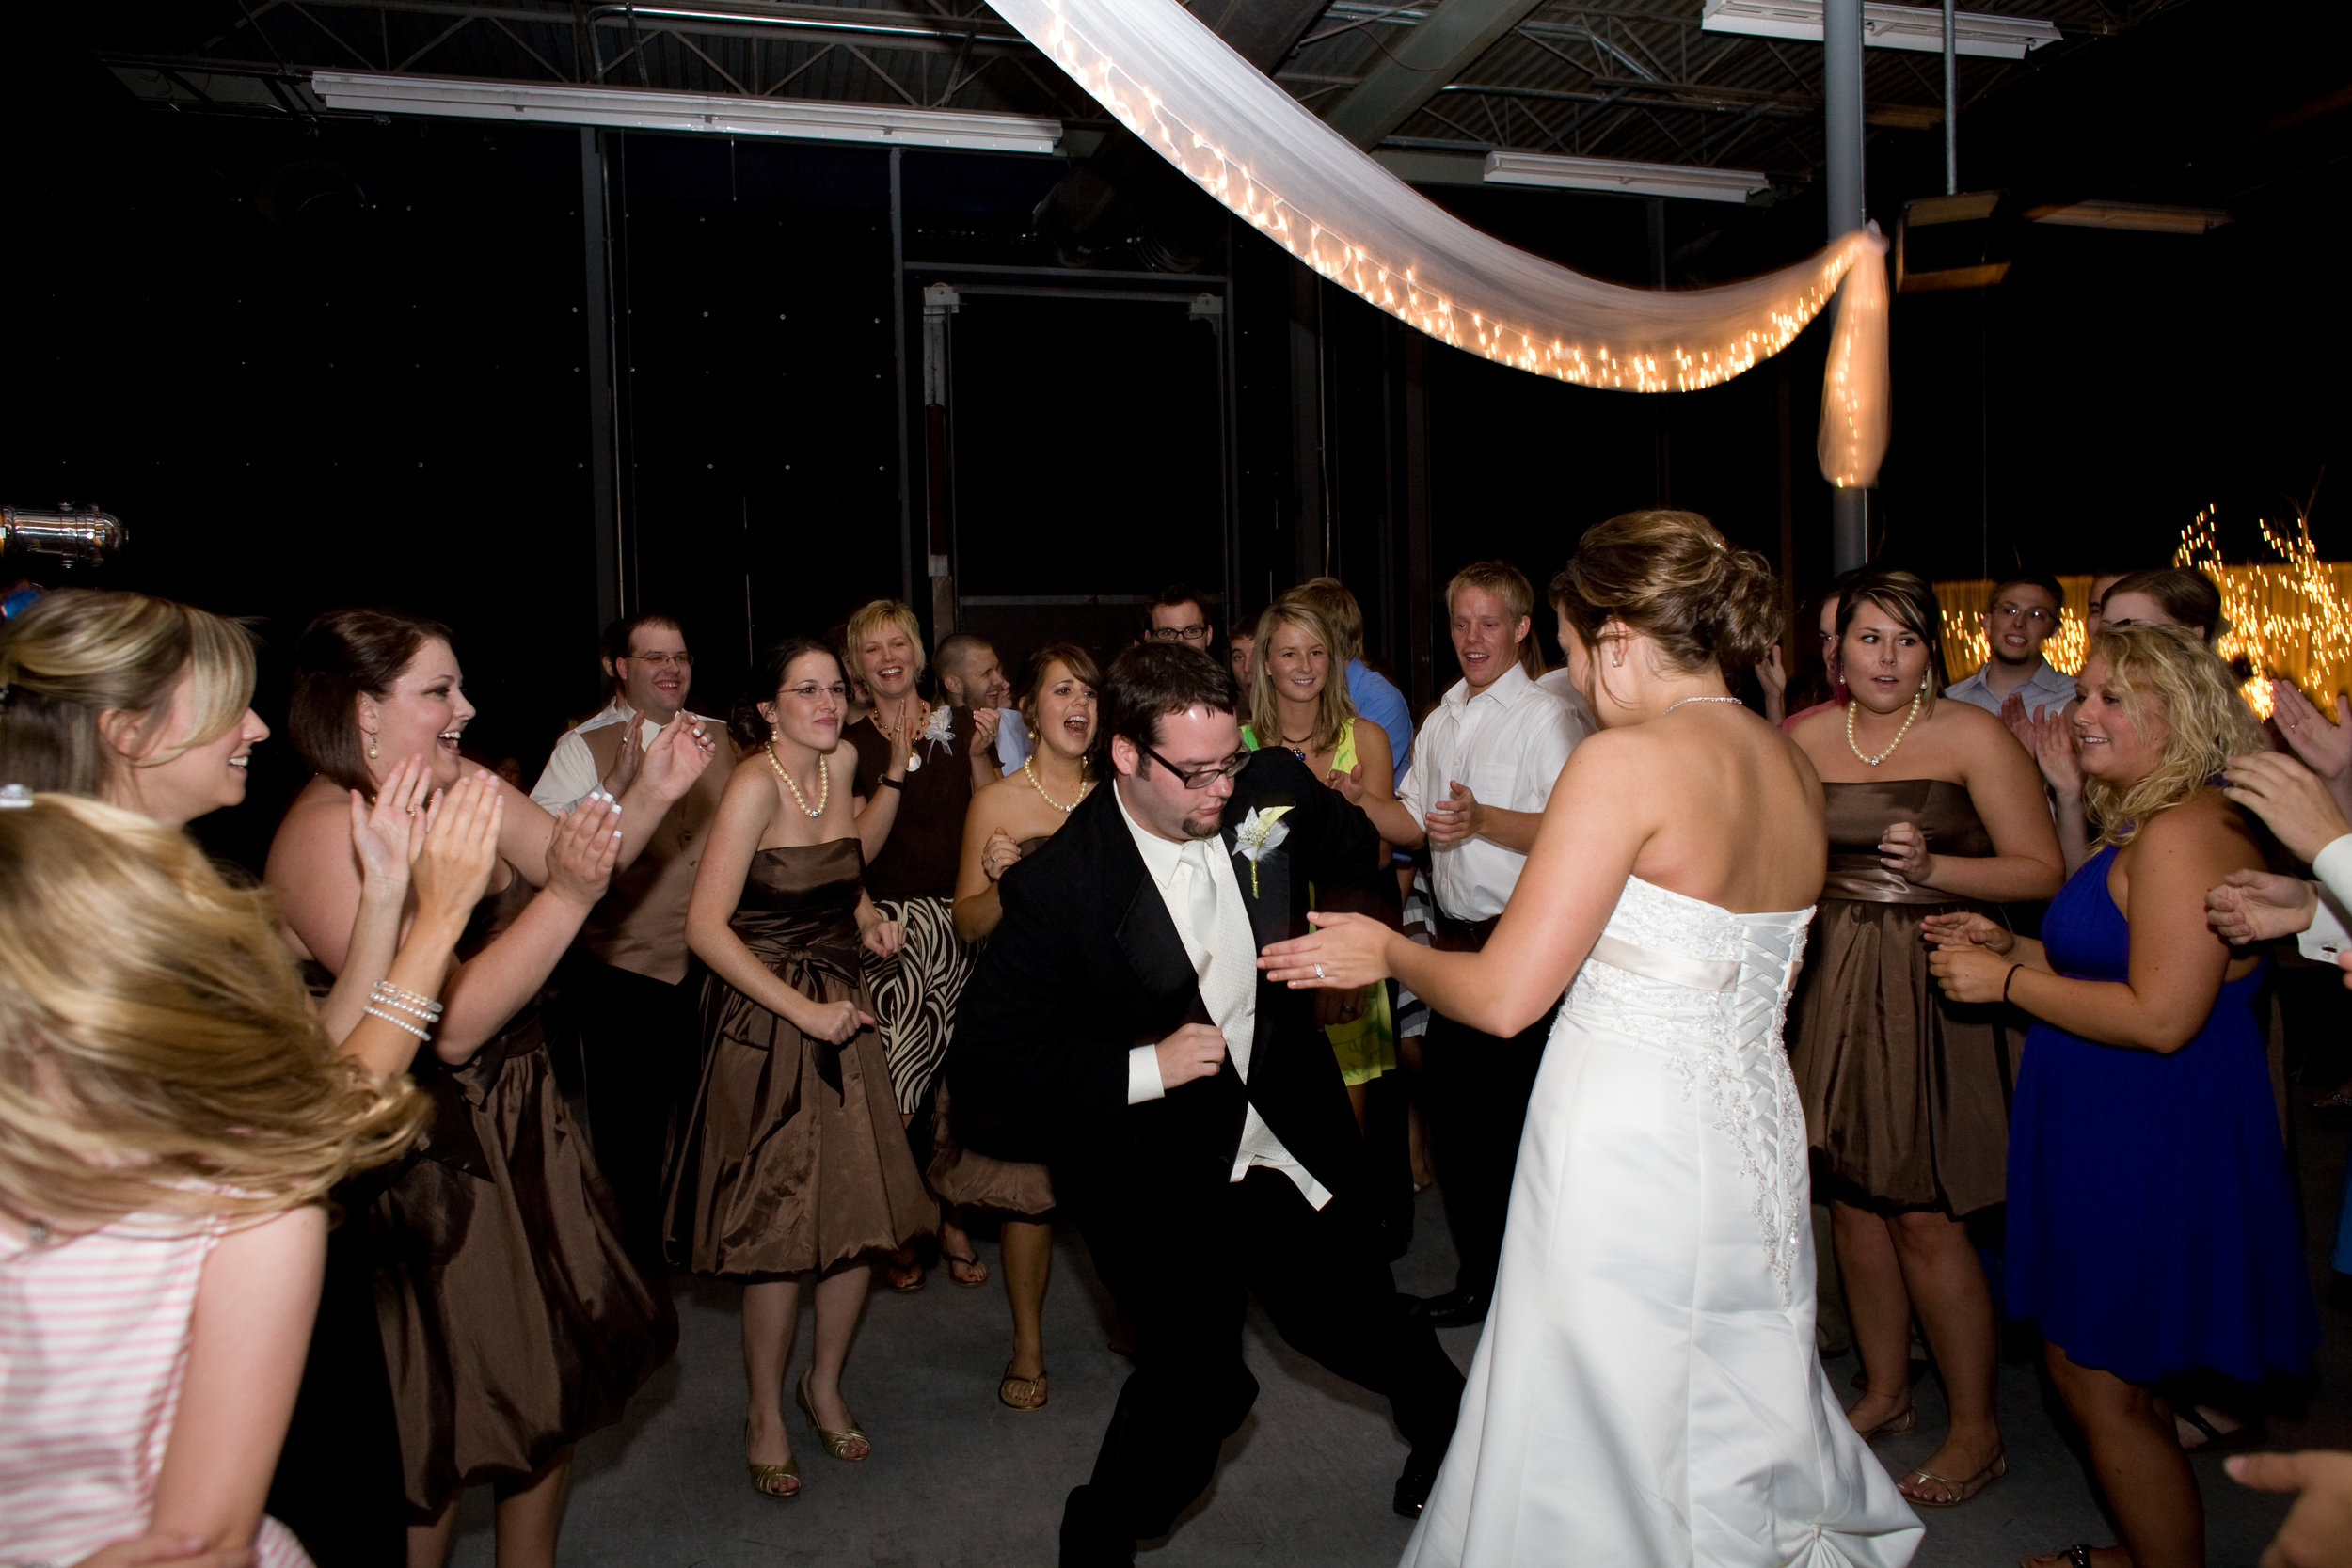 Wedding Music and Bands - Lubbock \u2014 Caldwell Entertainment - wedding music for reception